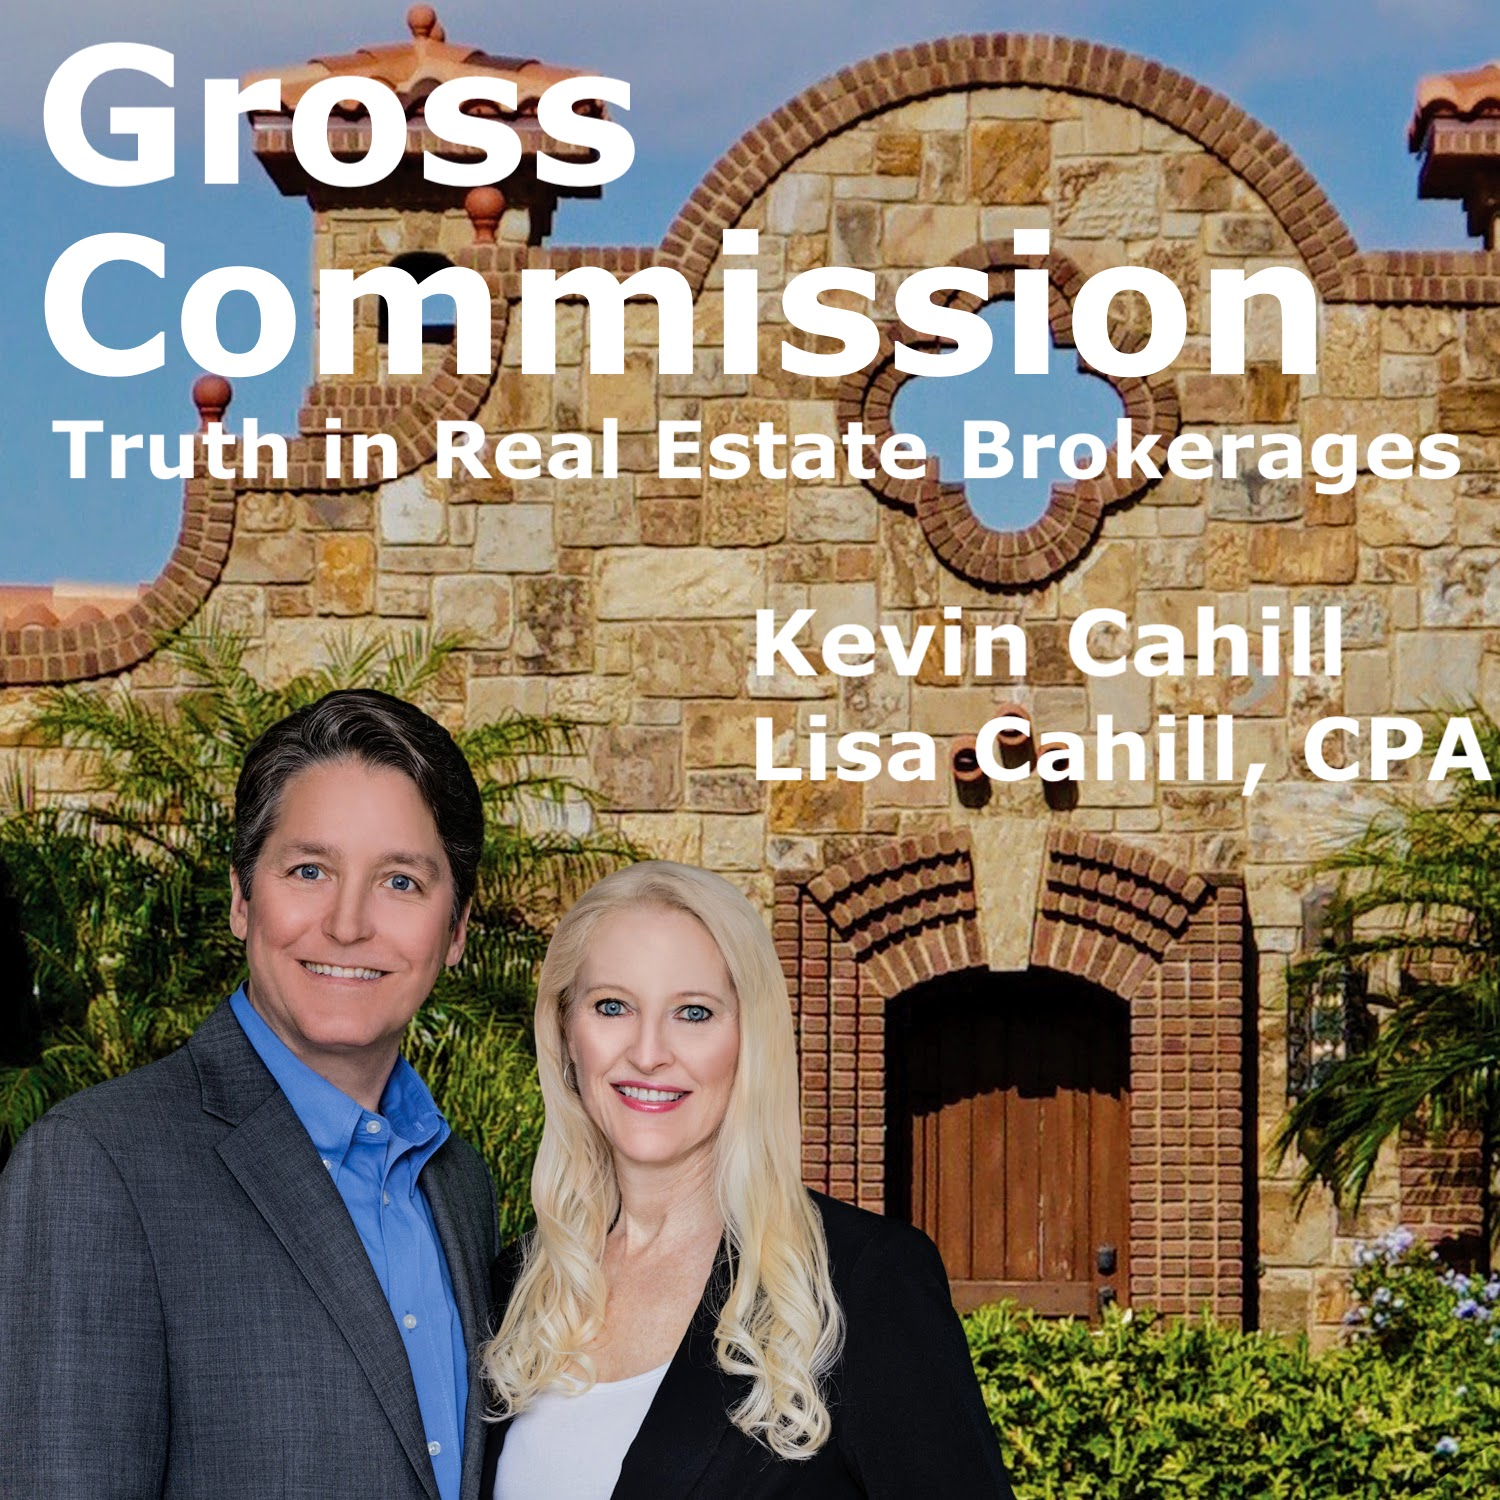 3. Gross Commission -- the 4 Ways to Grow your Gross Commission